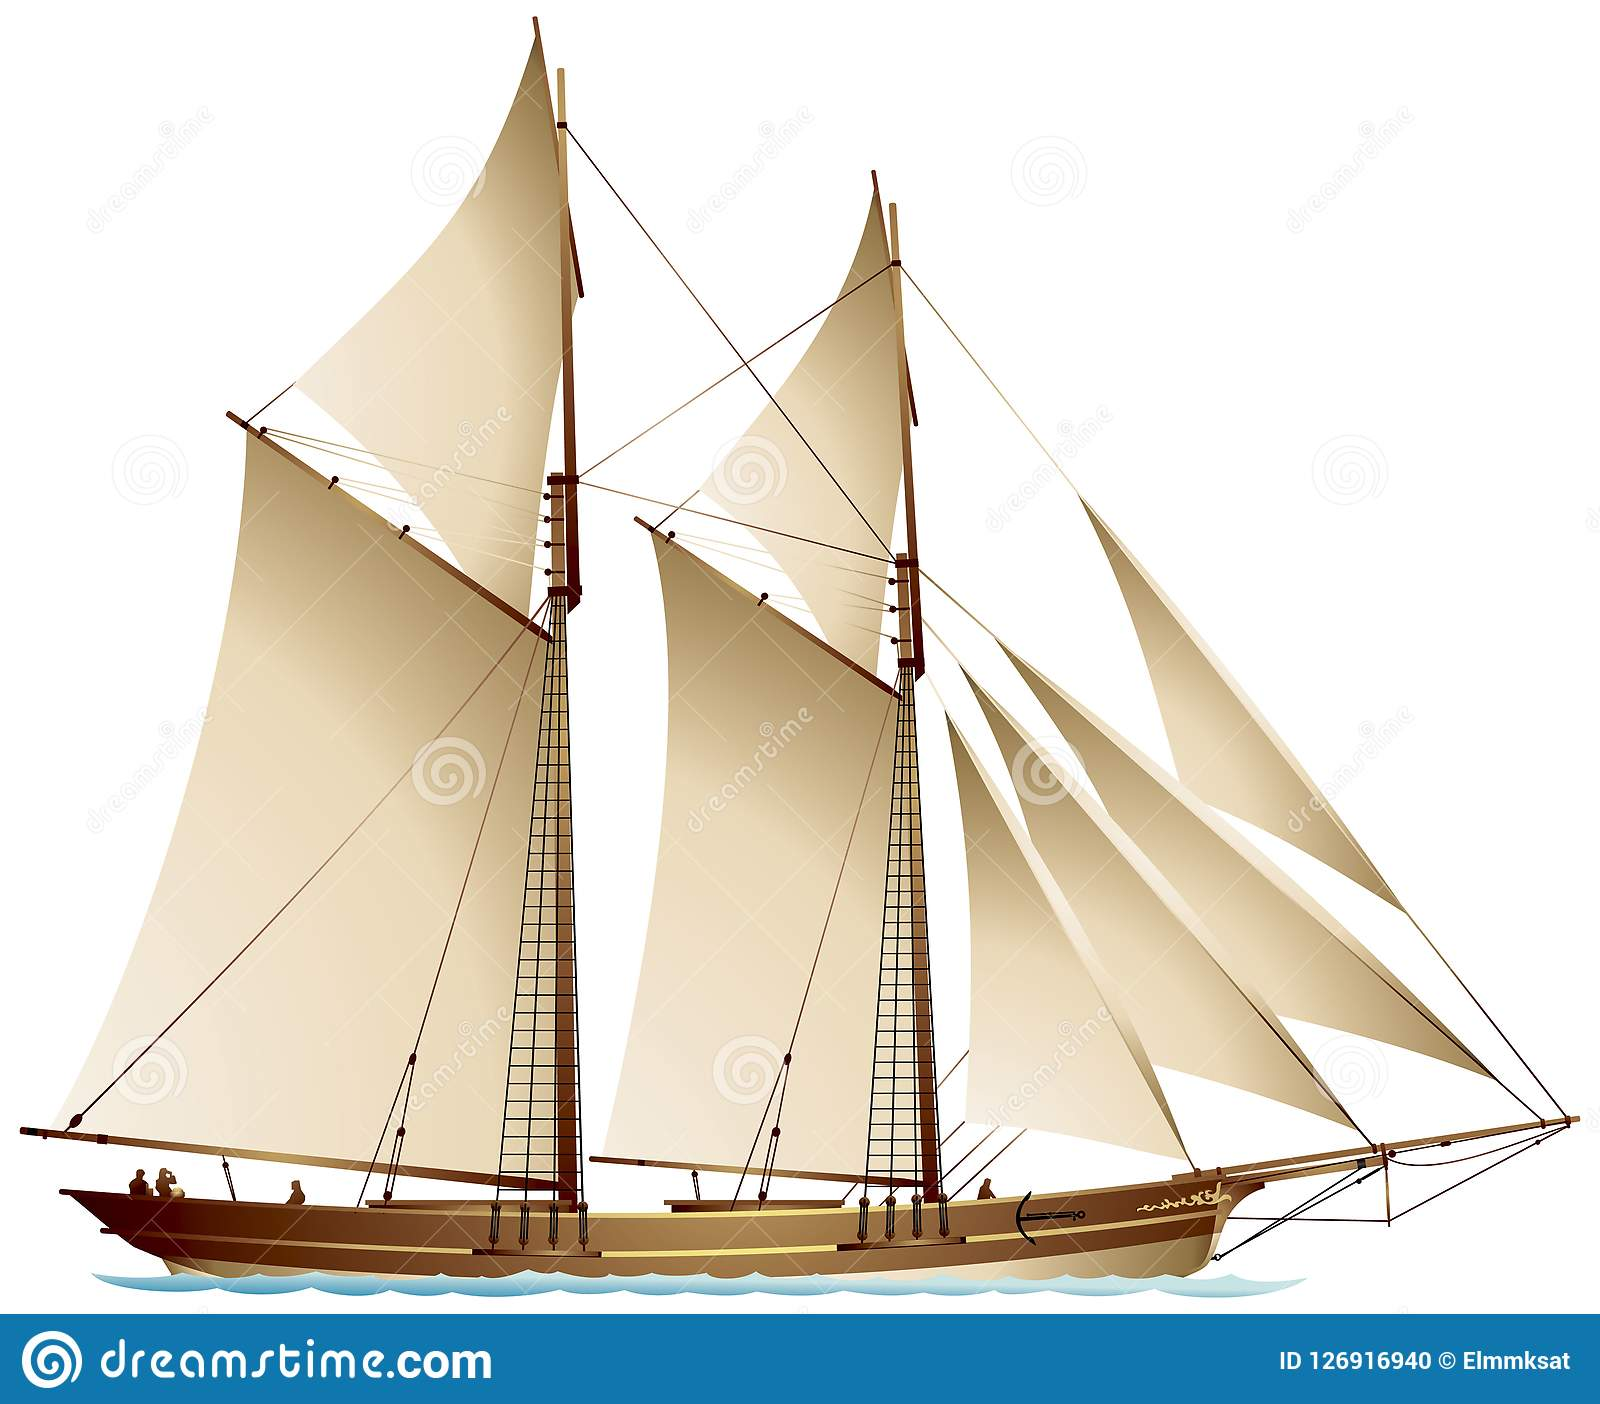 schooner gaff rigged sailing vessel stock vector illustration of